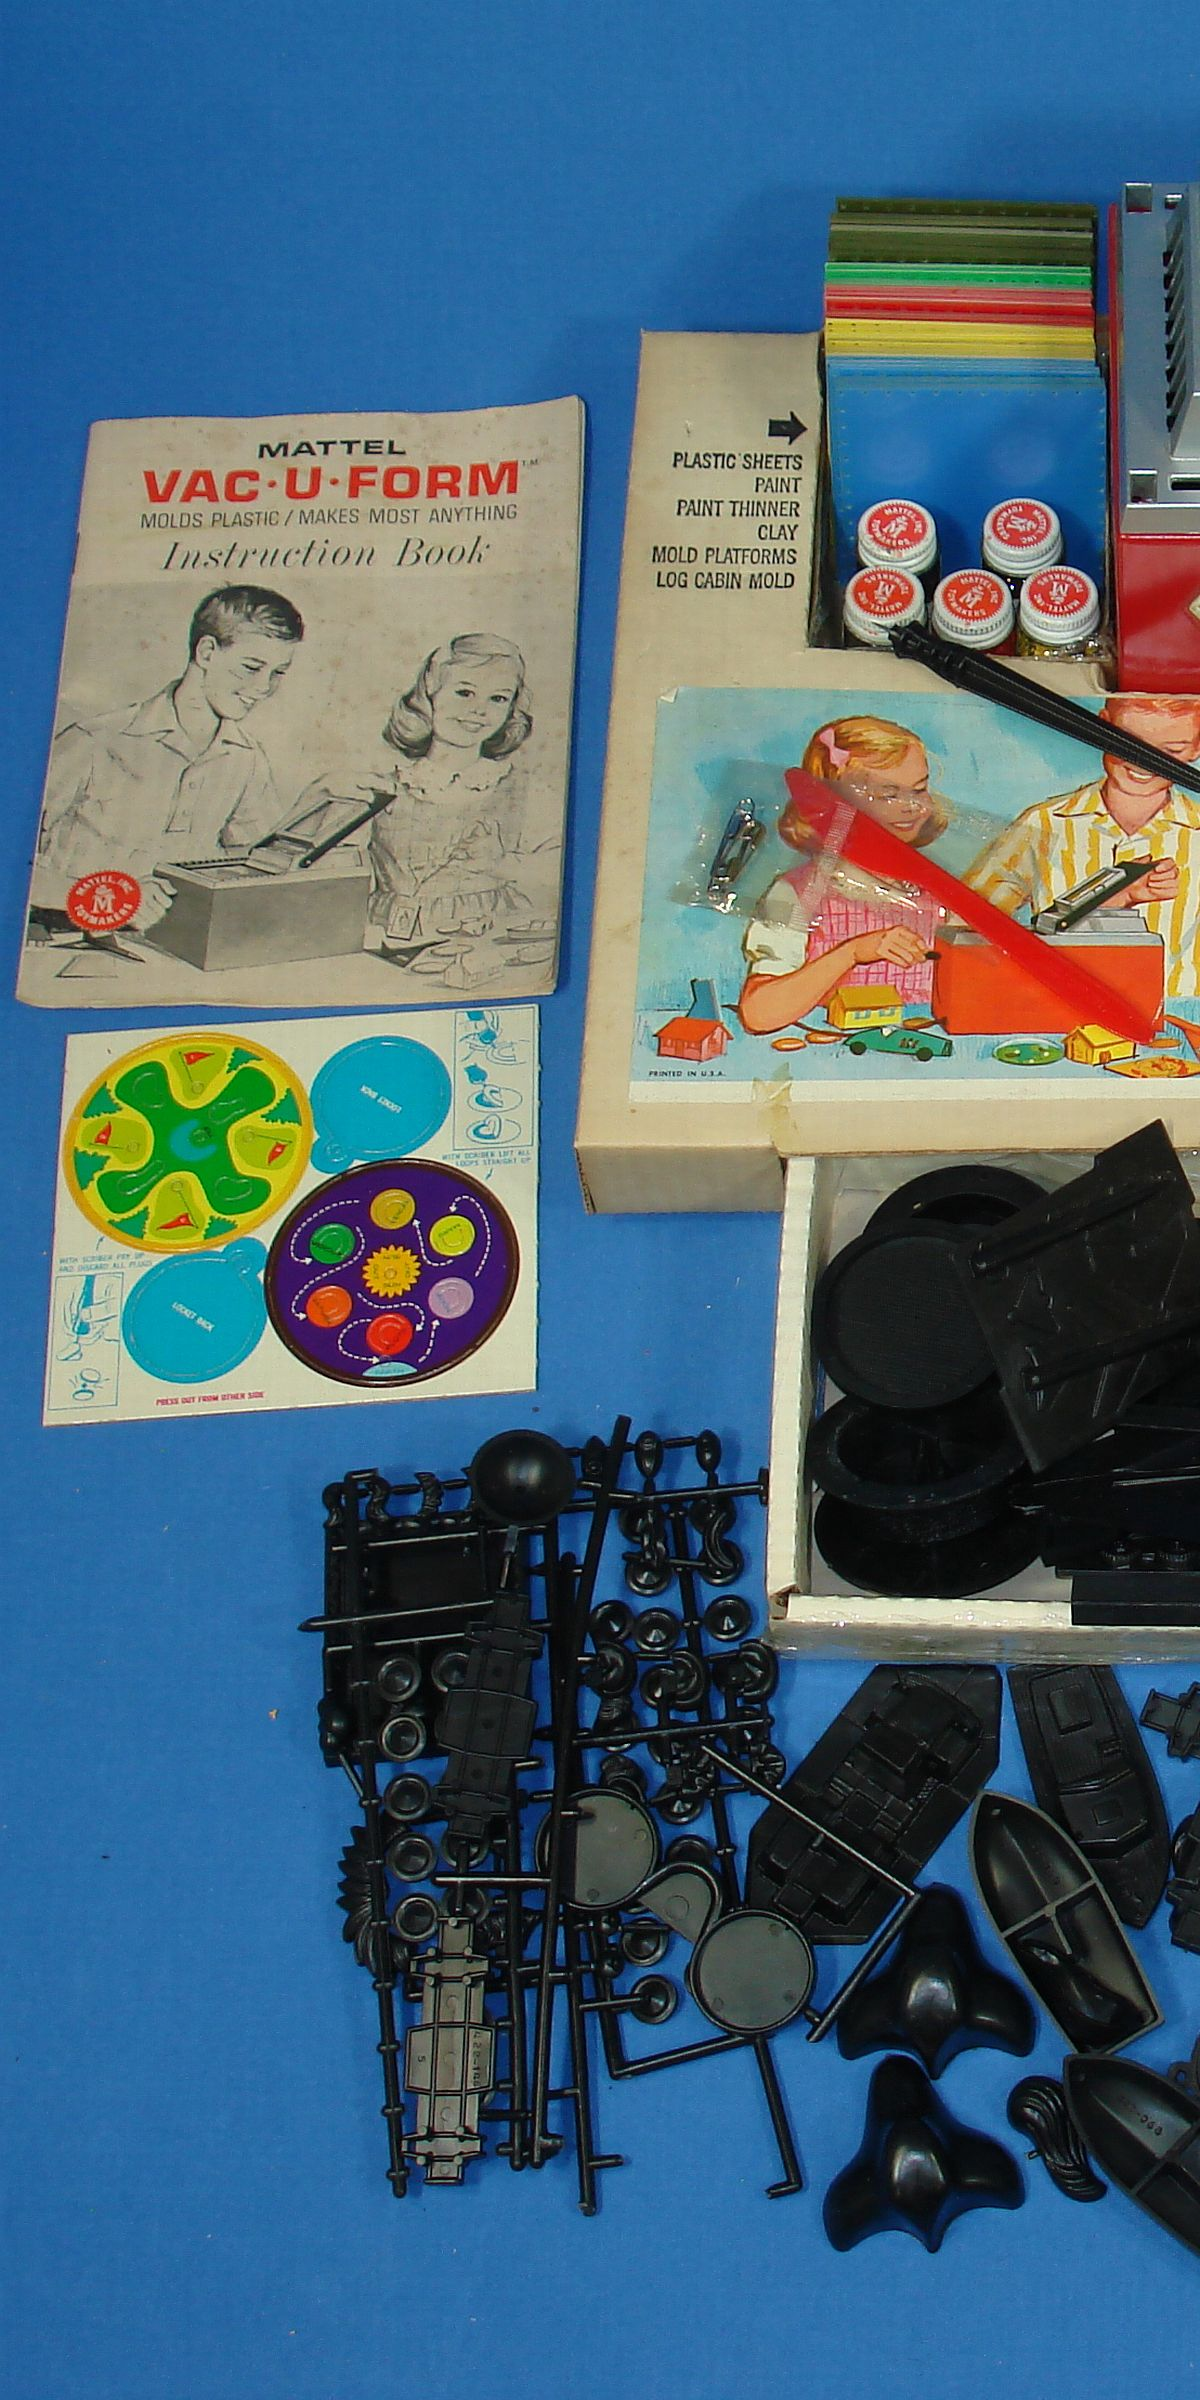 Vintage Mattel Vac-U-Form Toy Makers Mold Kit #422 Molds Plastic Makes Most Anything Box Contents